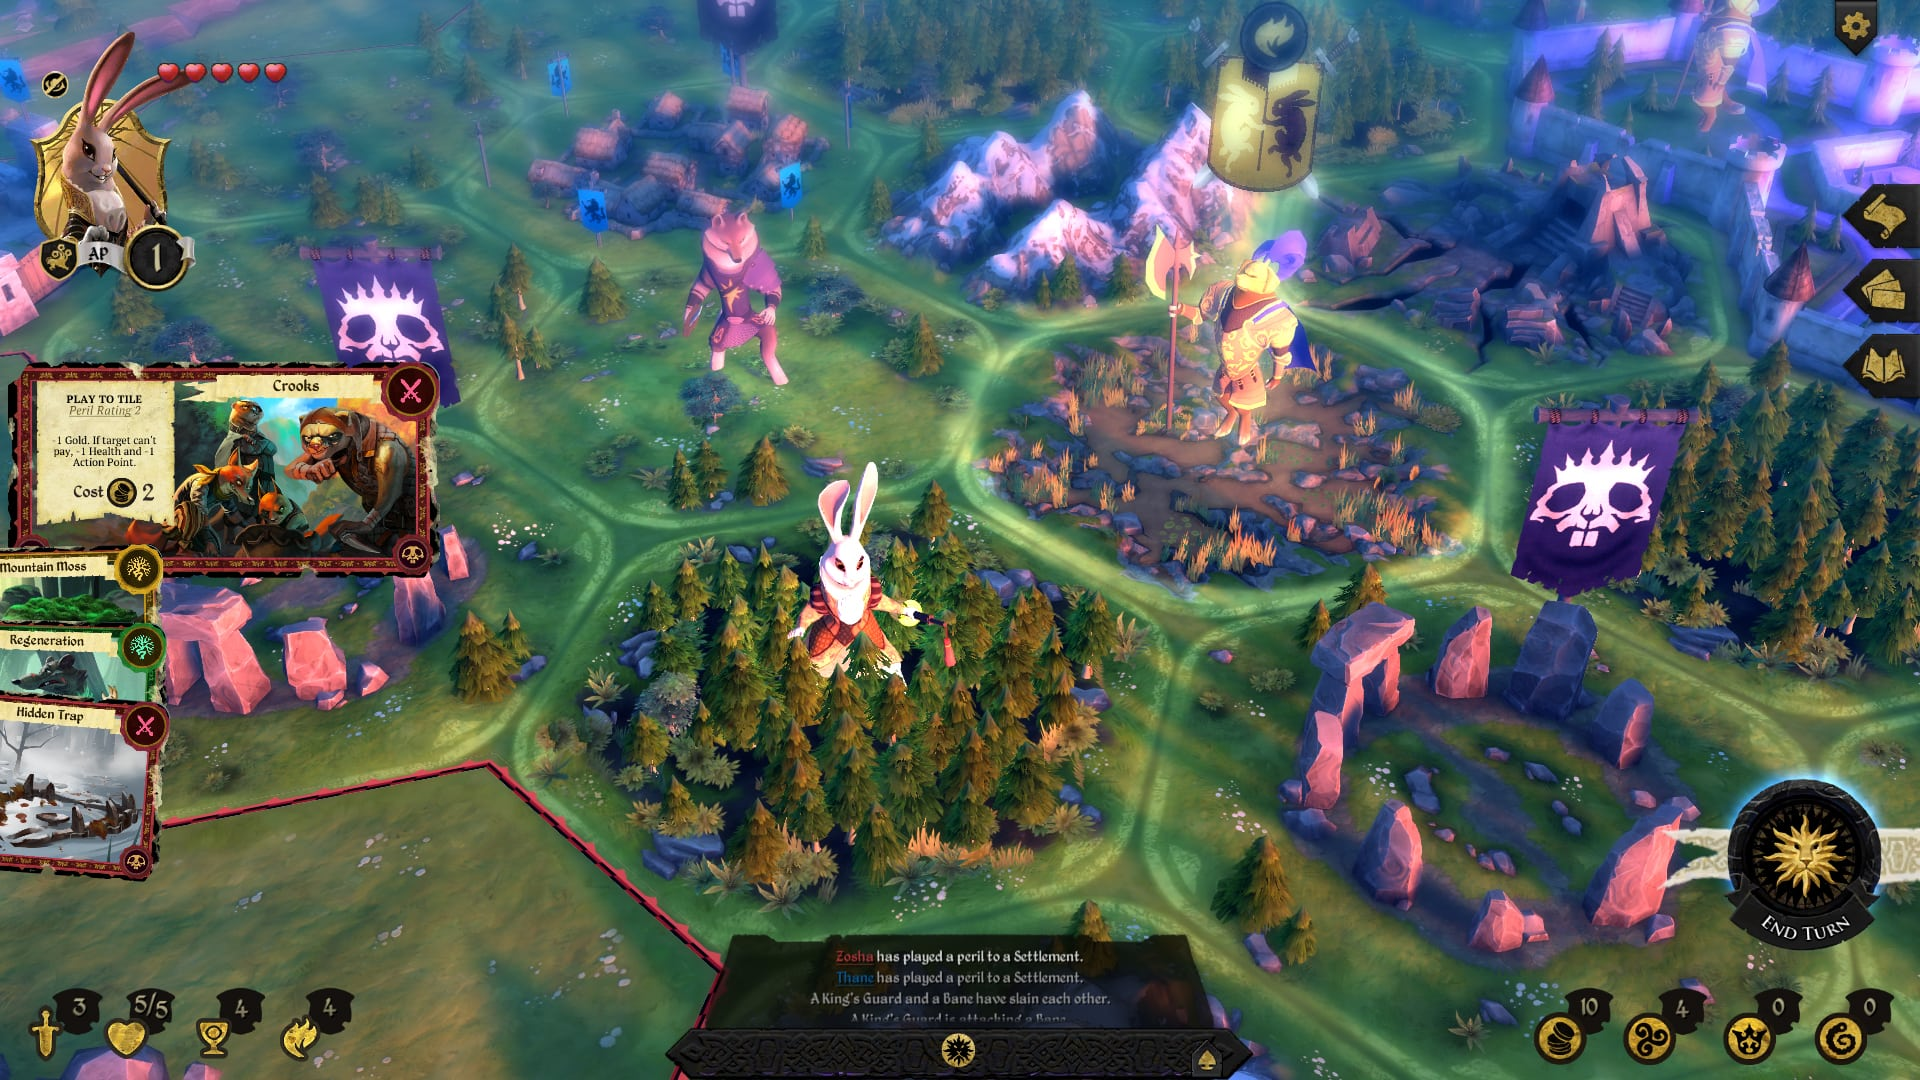 Armello: Armello is a property, copyright and trademark of League of Geeks Pty Ltd